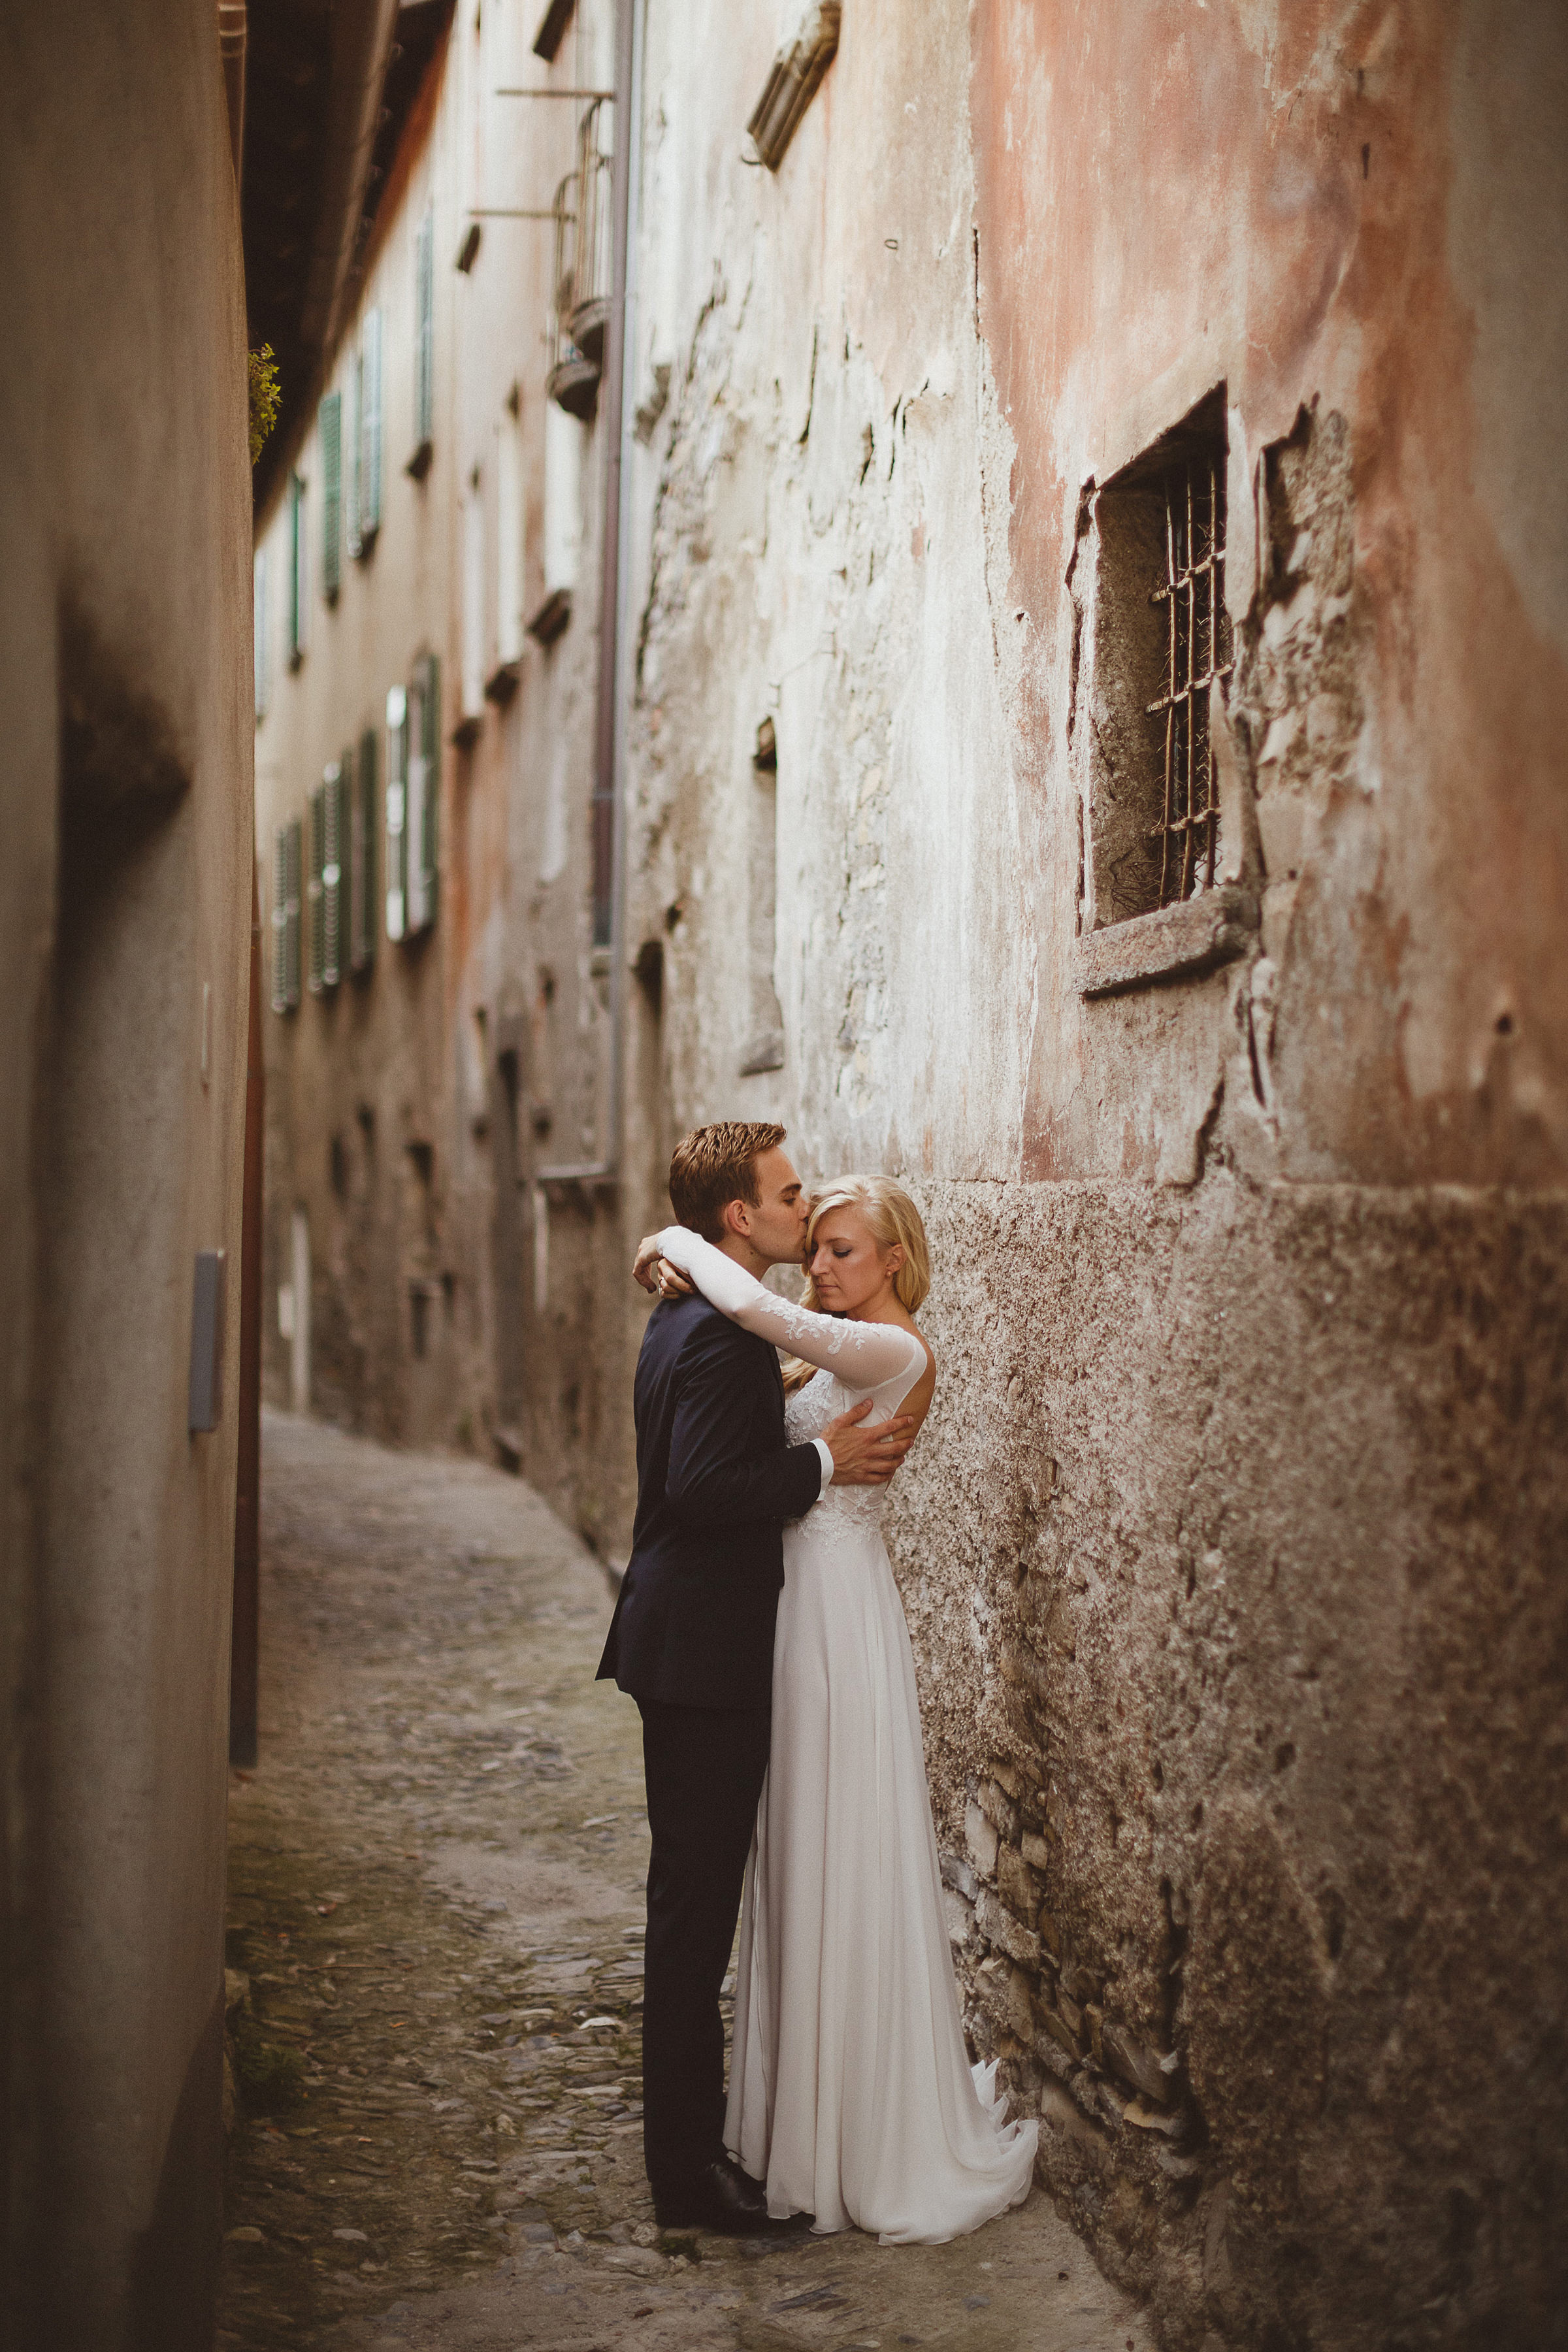 Couple embrace in rustic alleyway - photo by Ed Peers Photography